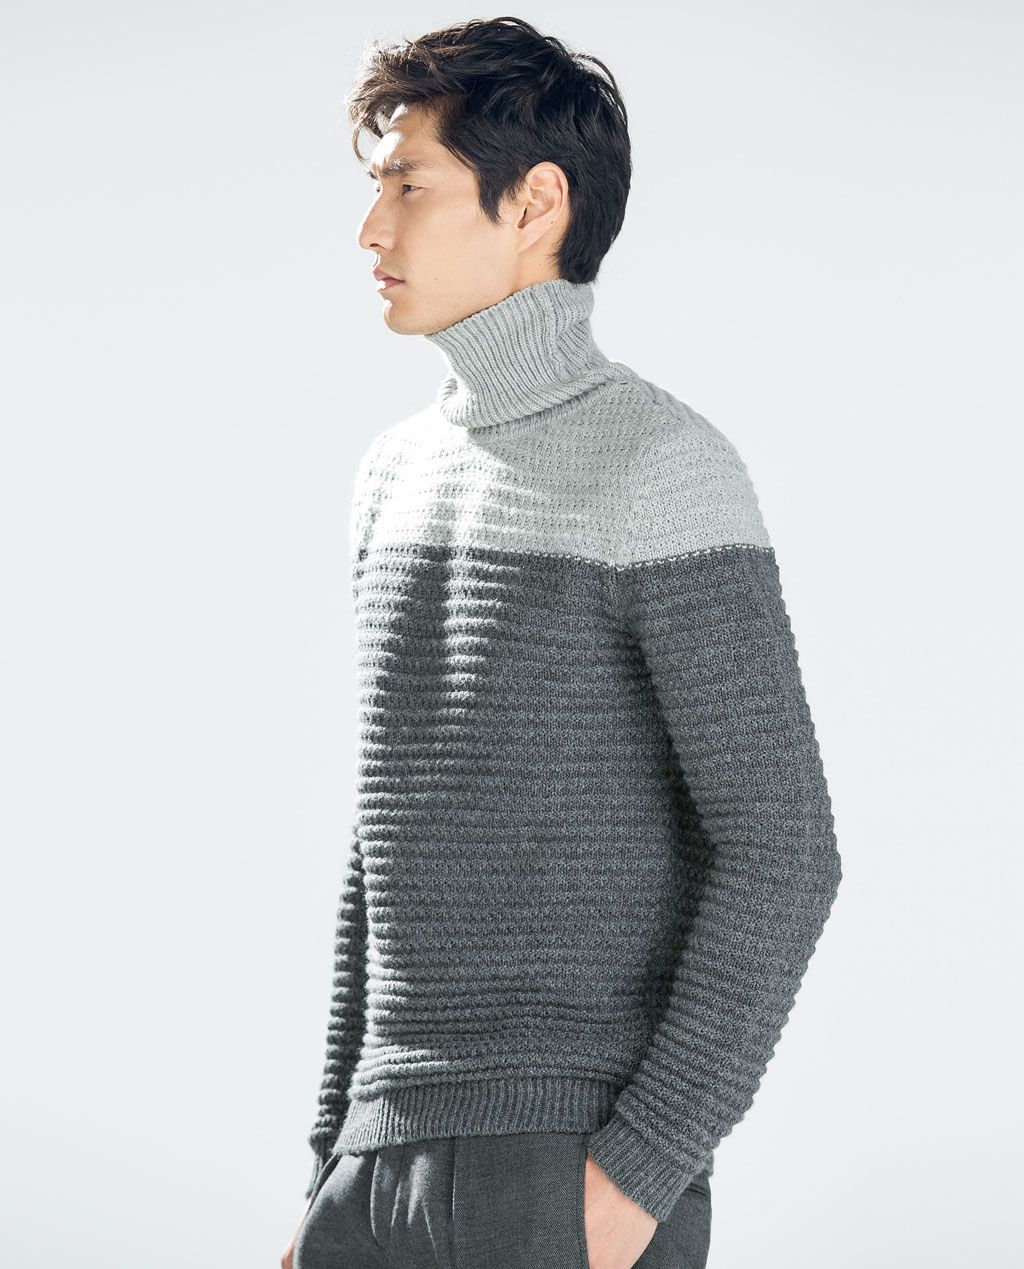 d485c7a8 ZARA - MAN - COLOR BLOCK SWEATER | Fashion Zara | Sweaters, Color ...